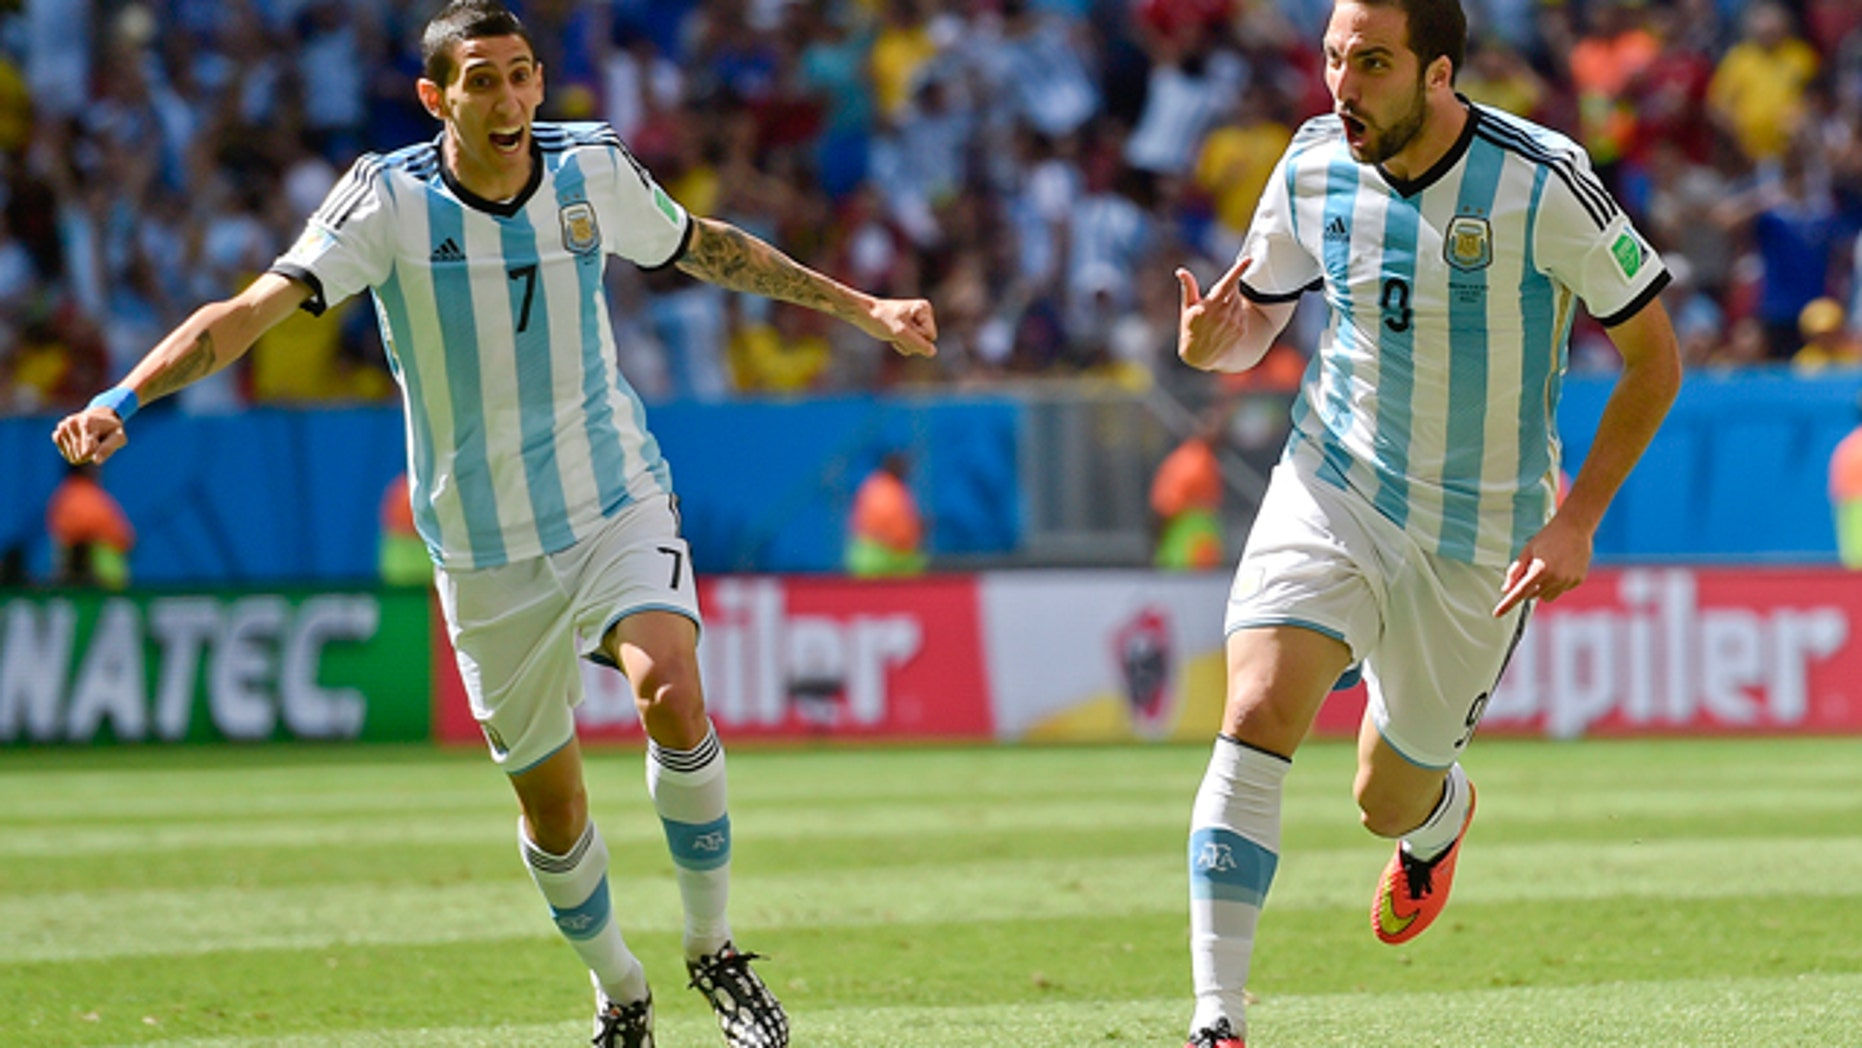 July 5, 2014: Argentina's Gonzalo Higuain, right, celebrates with Angel di Maria after scoring the opening goal during the World Cup quarterfinal soccer match between Argentina and Belgium at the Estadio Nacional in Brasilia, Brazil. (AP Photo/Martin Meissner)